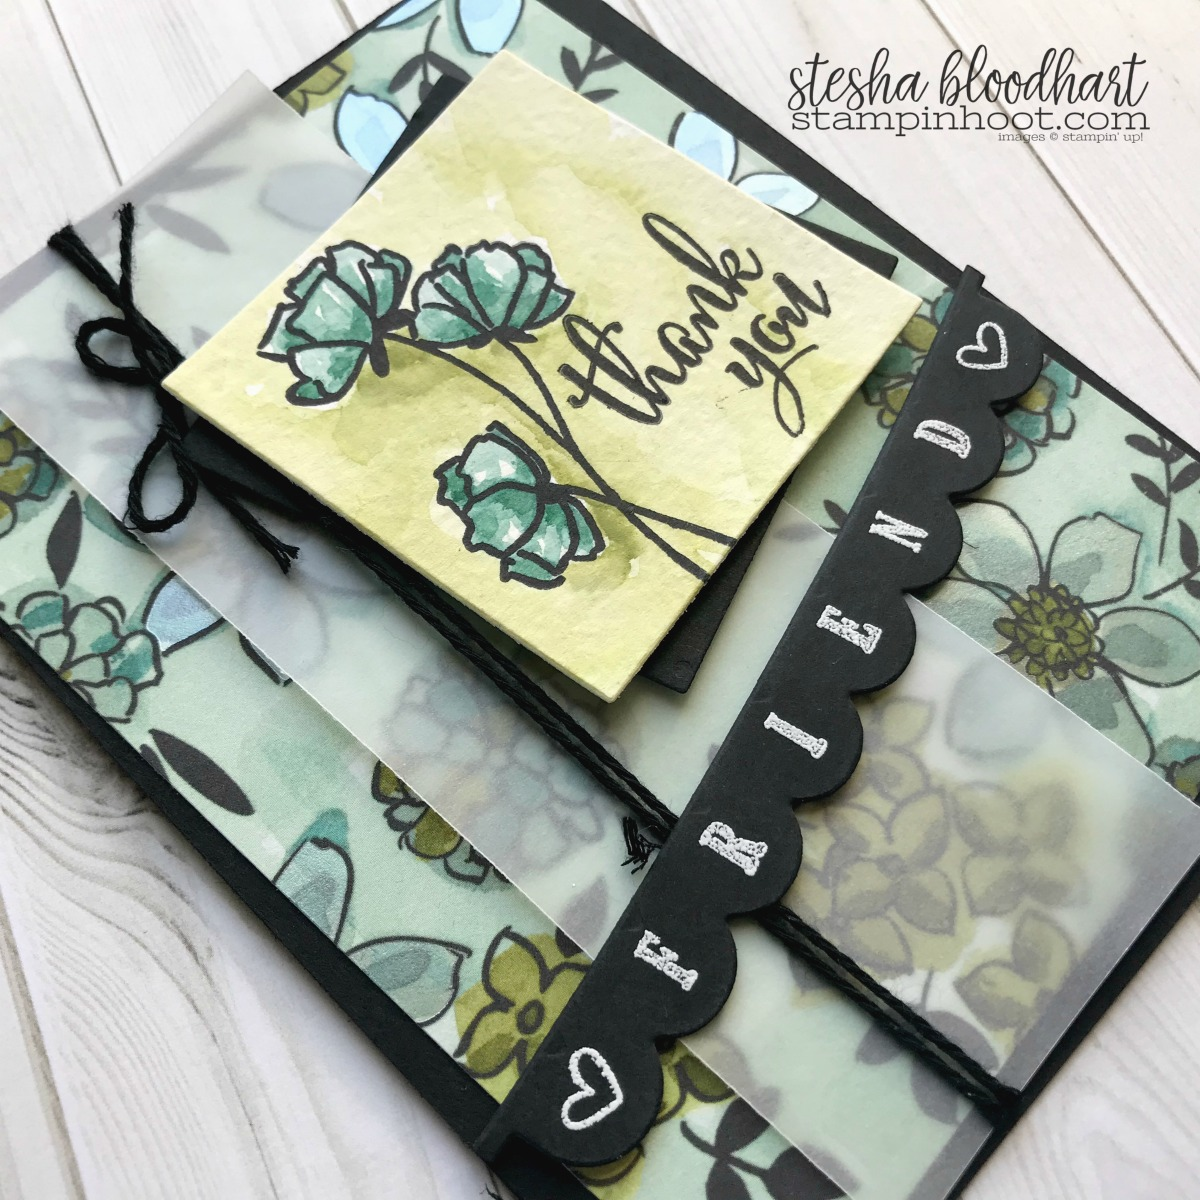 Share What You Love Suite Early Release Available May 1st 2018 Card Created by Stesha Bloodhart, Stampin' Hoot for #OnStage2018 Display Board, Milwaukee WI #steshabloodhart #stampinhoot